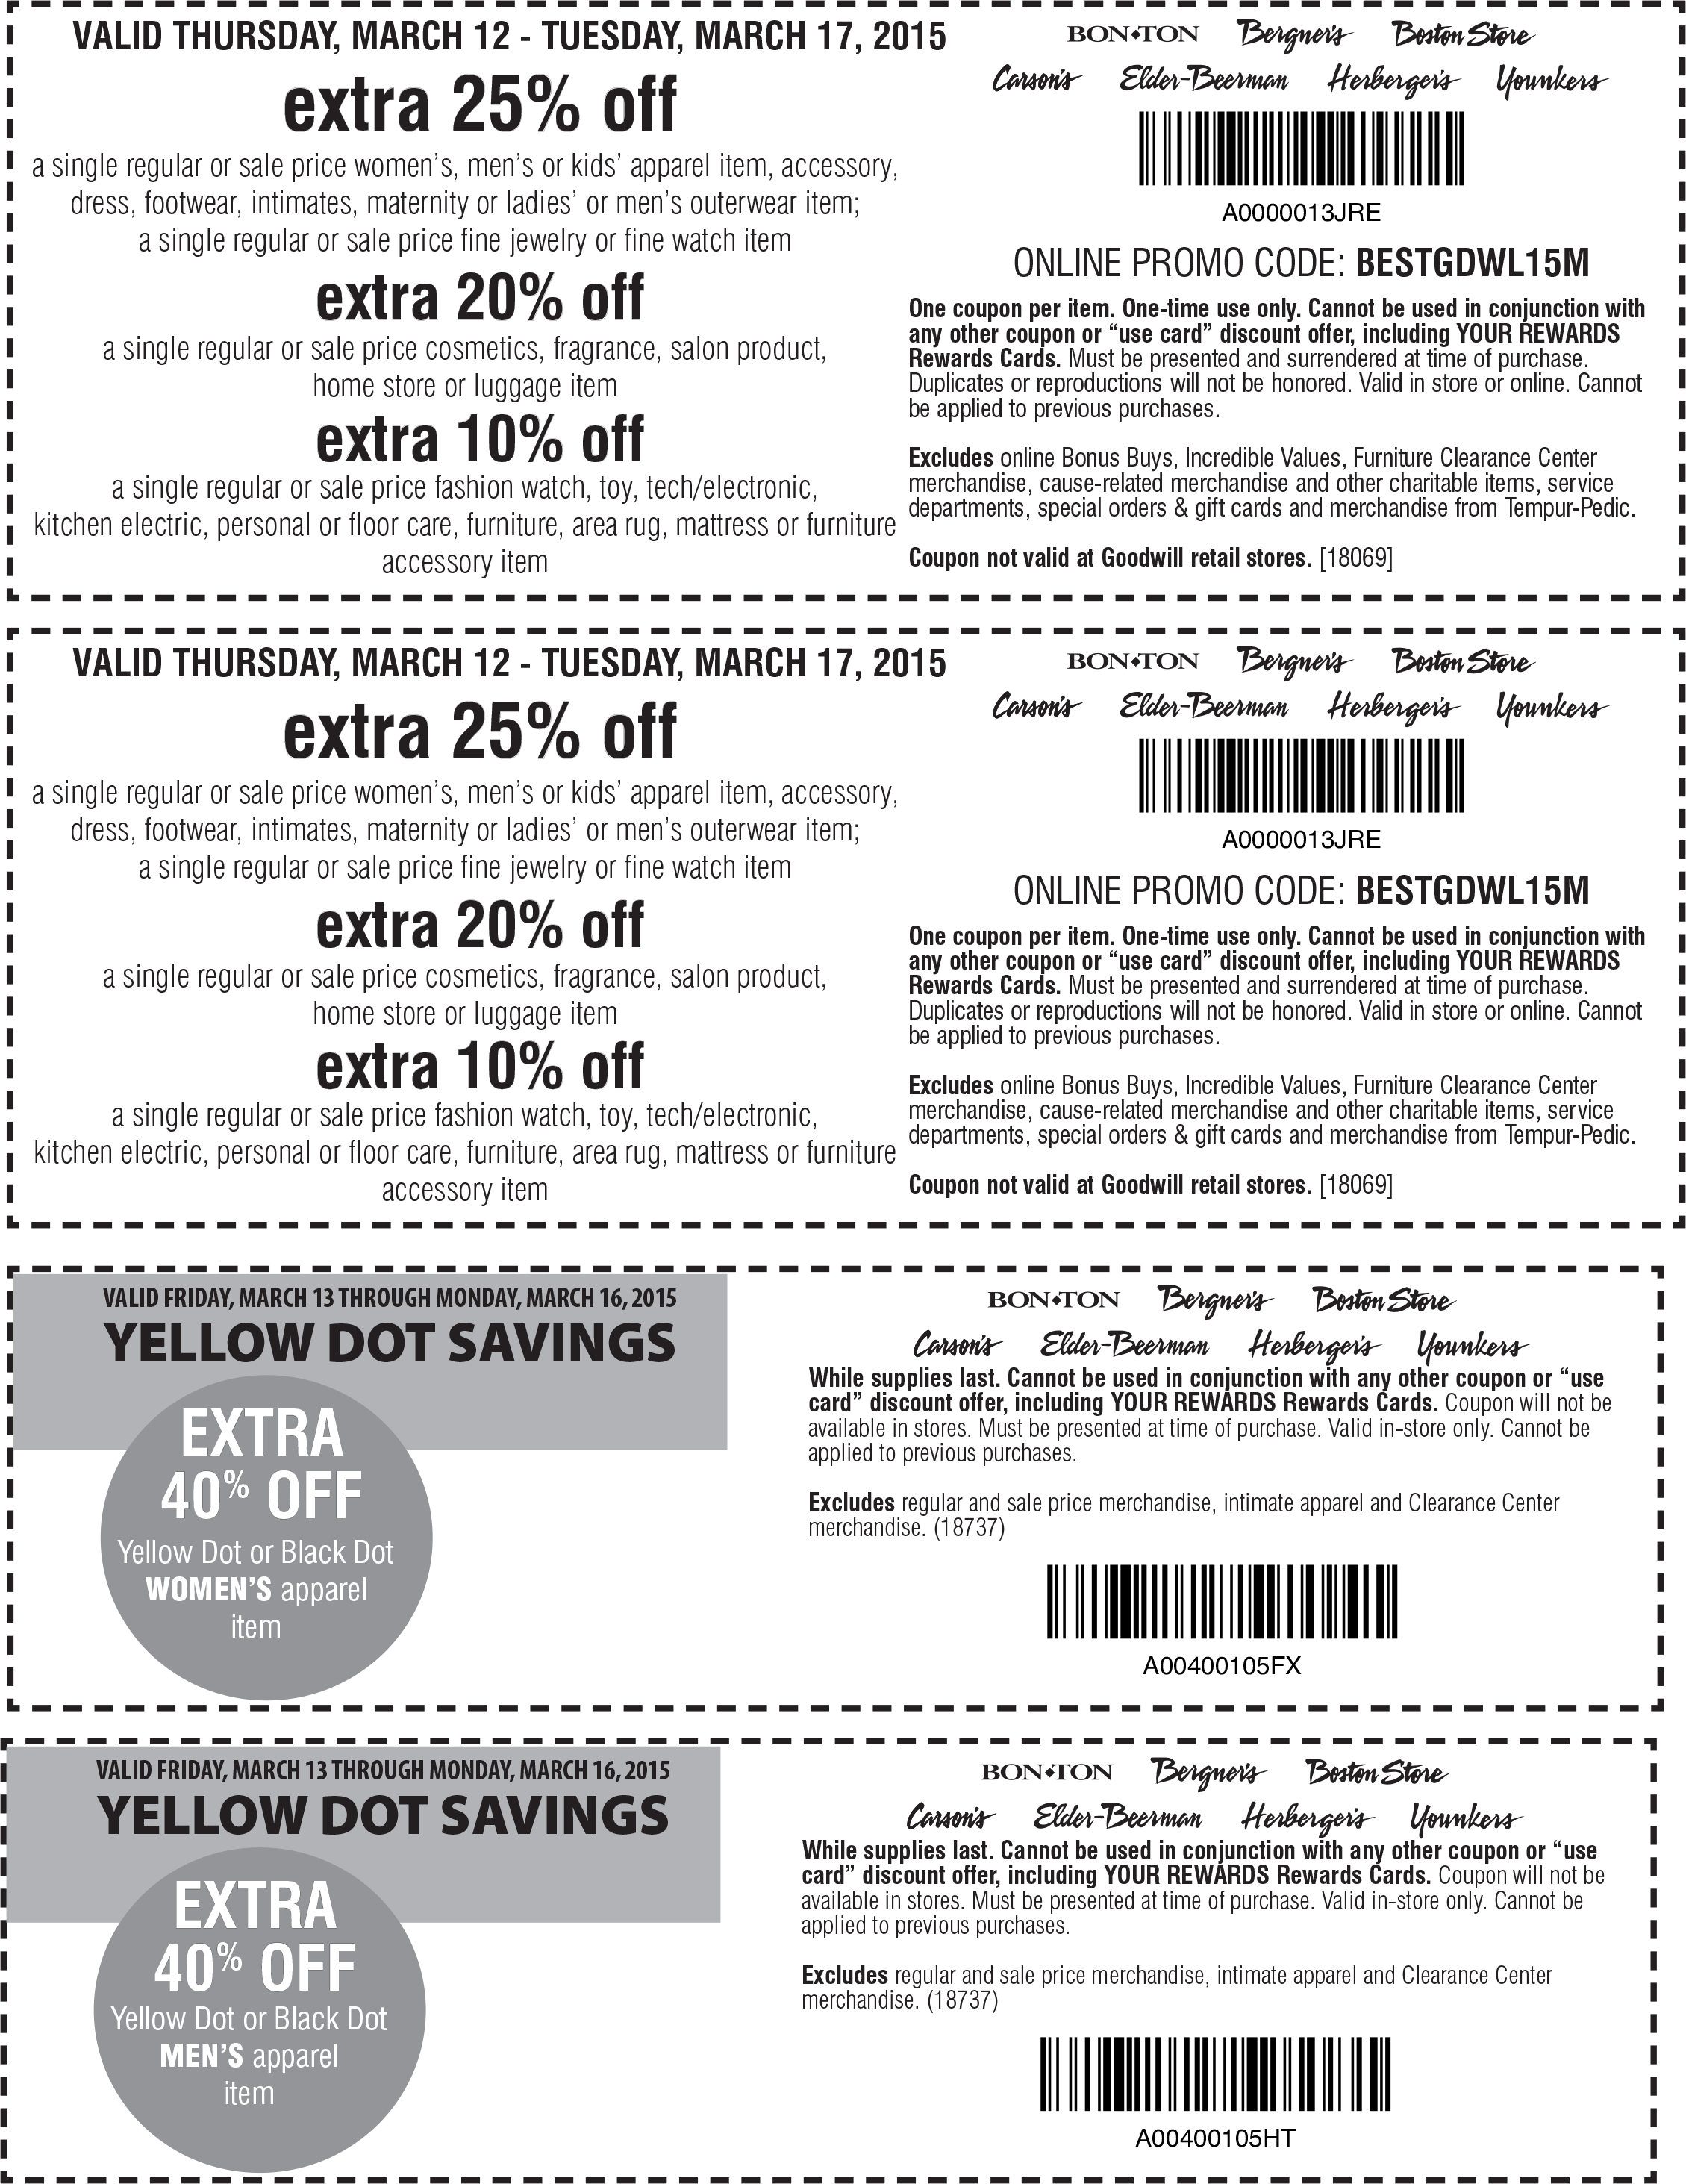 Carsons Coupon July 2017 Extra 25-40% off at Carsons, Bon Ton & sister stores, or online via promo code BESTGDWL15M